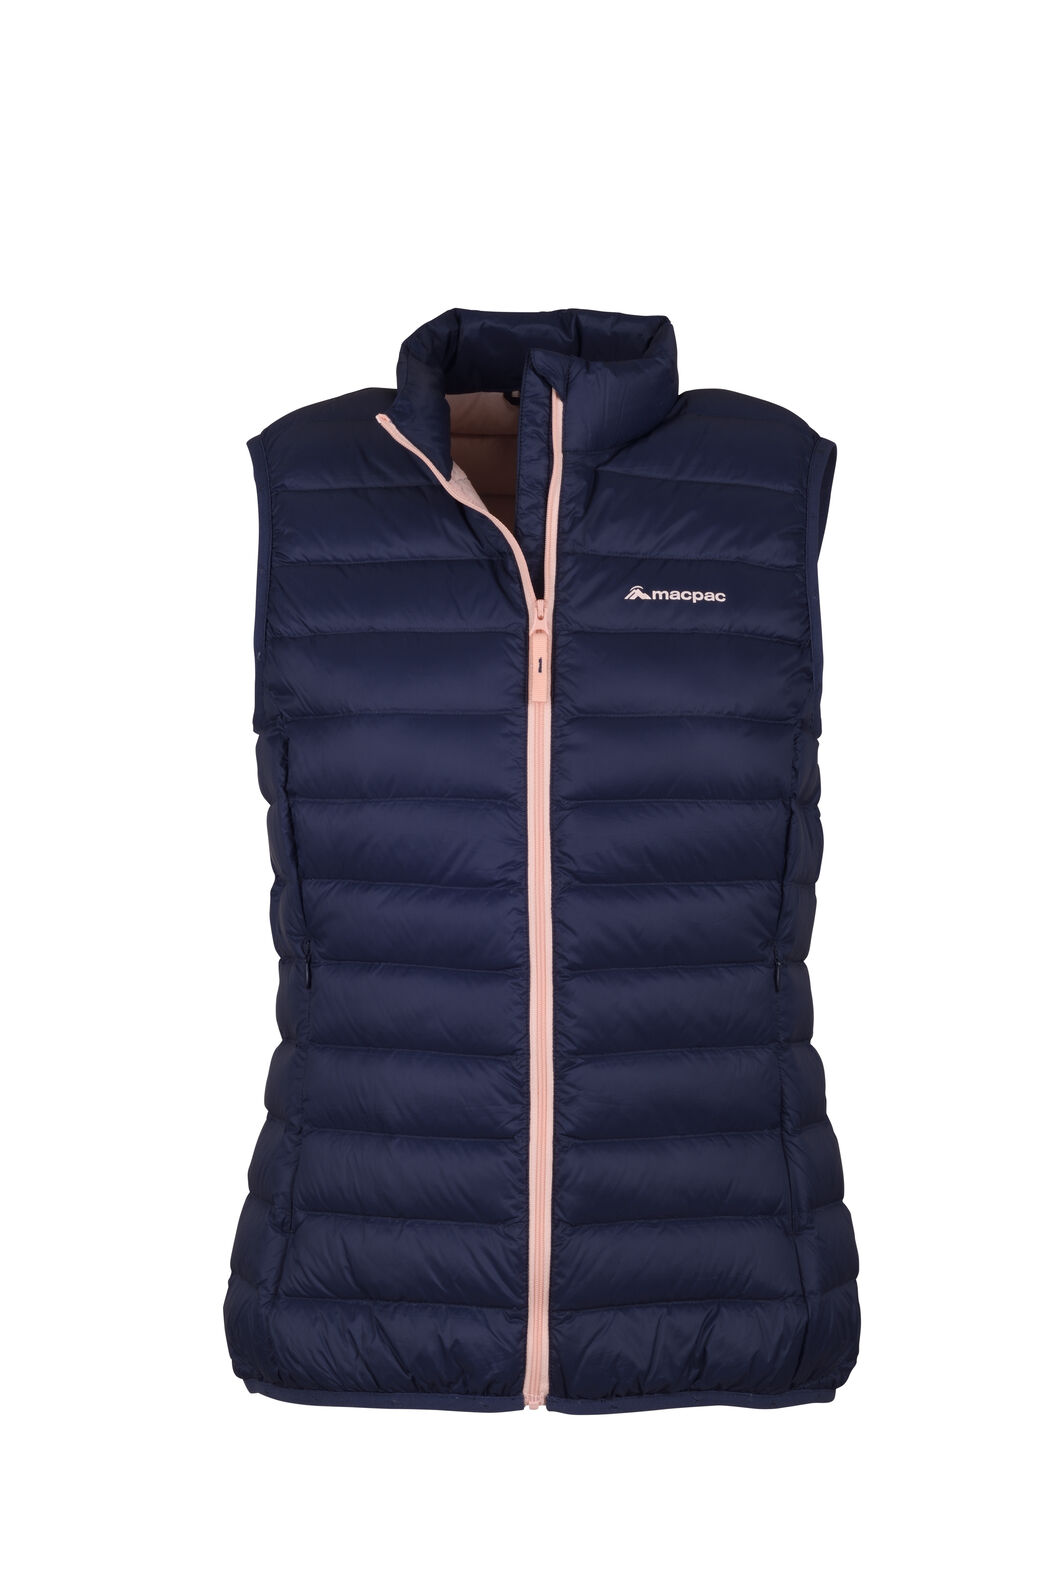 Macpac Uber Light Down Vest - Women's, Mood Indigo, hi-res